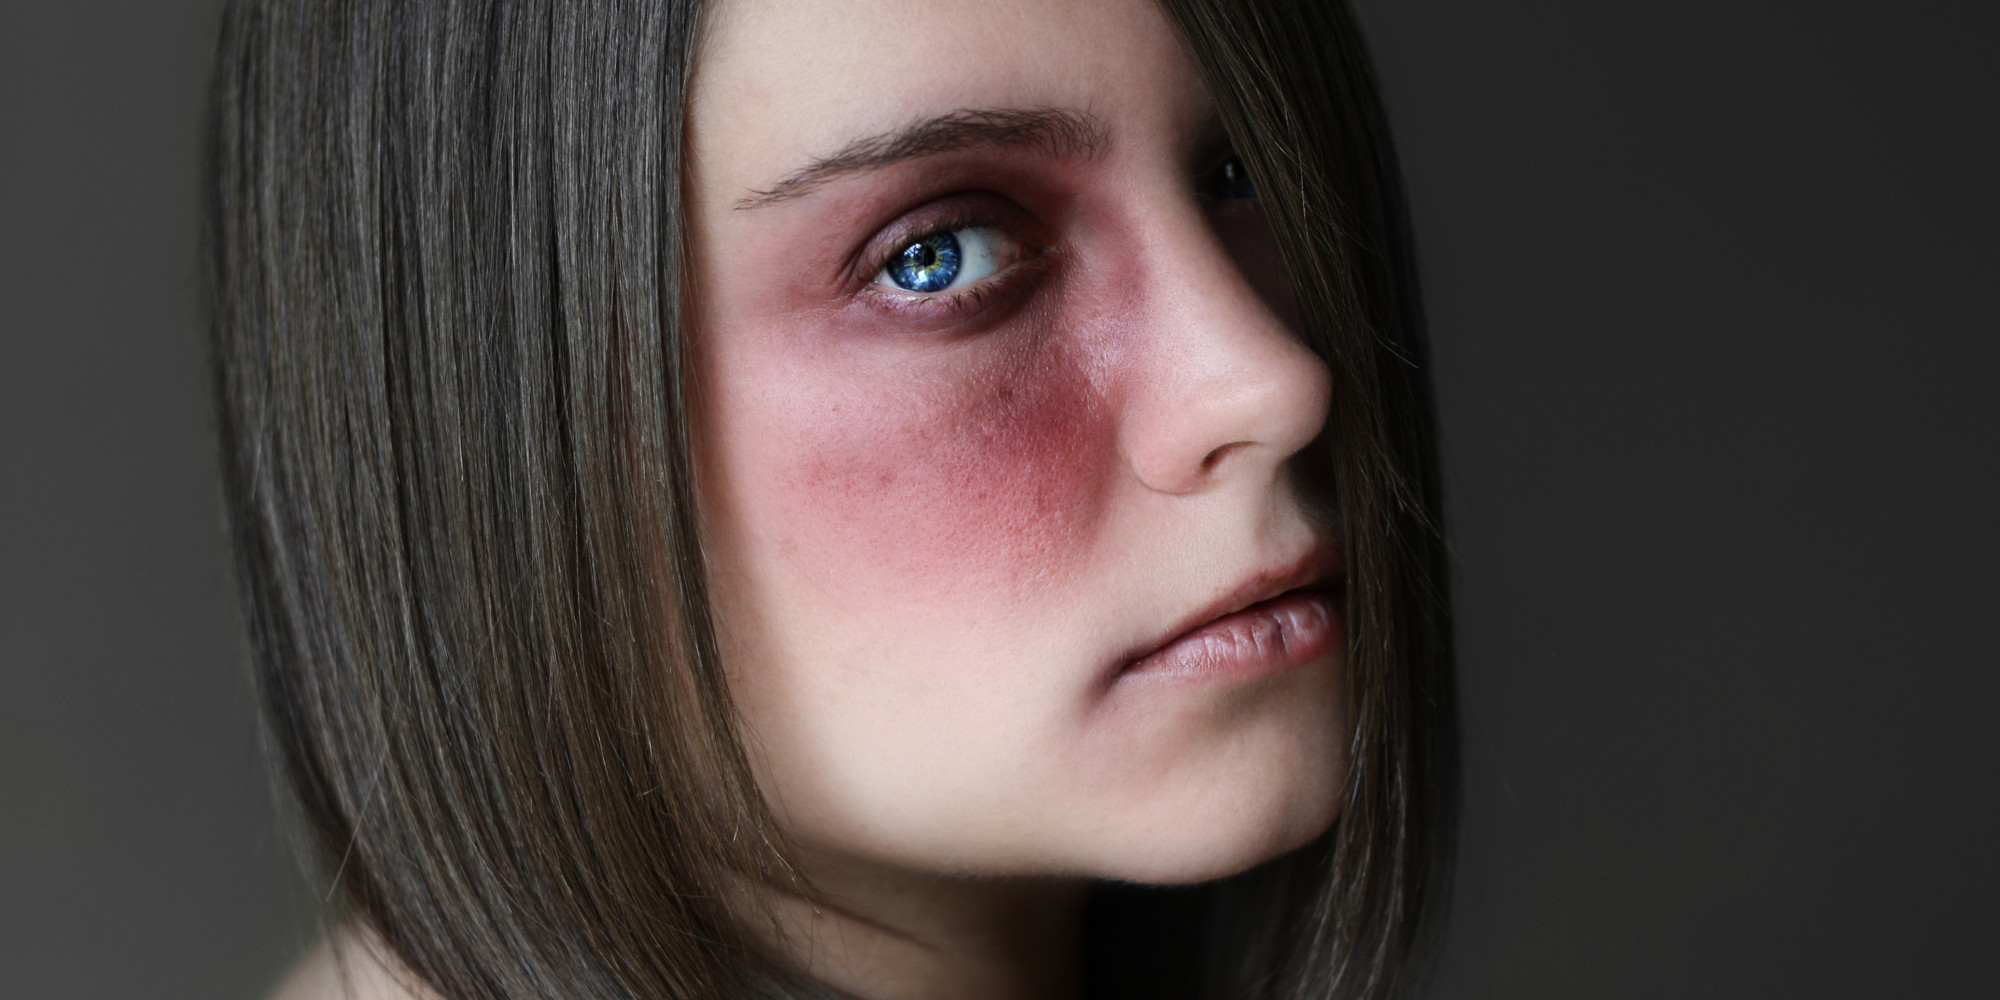 A stranger attacked her in her home Battered Women Pictures